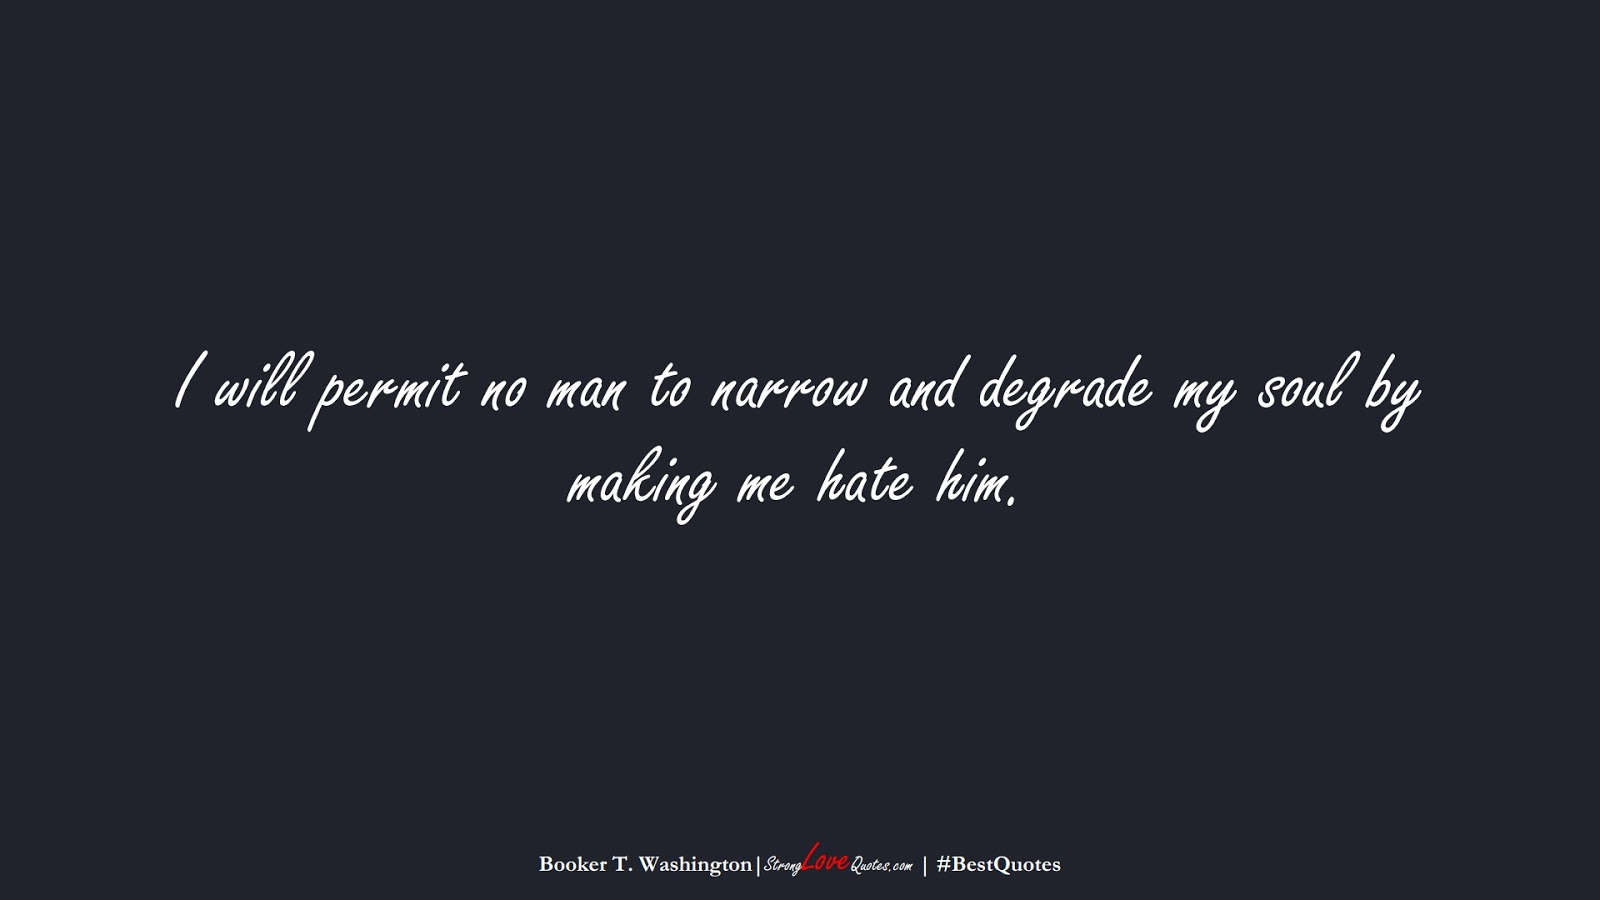 I will permit no man to narrow and degrade my soul by making me hate him. (Booker T. Washington);  #BestQuotes